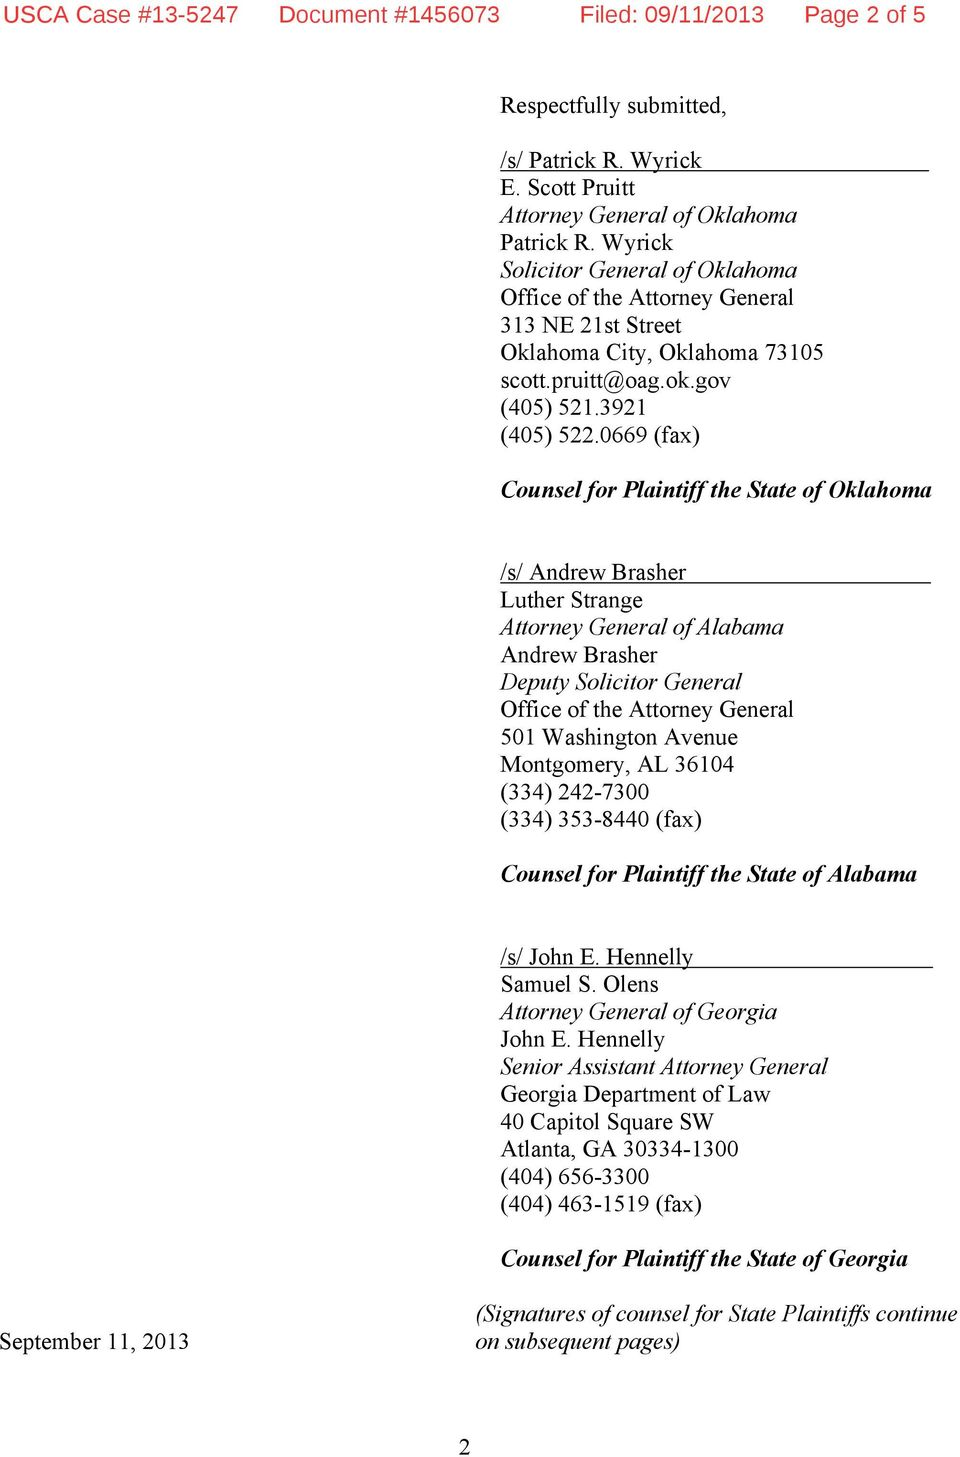 0669 (fax) Counsel for Plaintiff the State of Oklahoma /s/ Andrew Brasher Luther Strange Attorney General of Alabama Andrew Brasher Deputy Solicitor General 501 Washington Avenue Montgomery, AL 36104